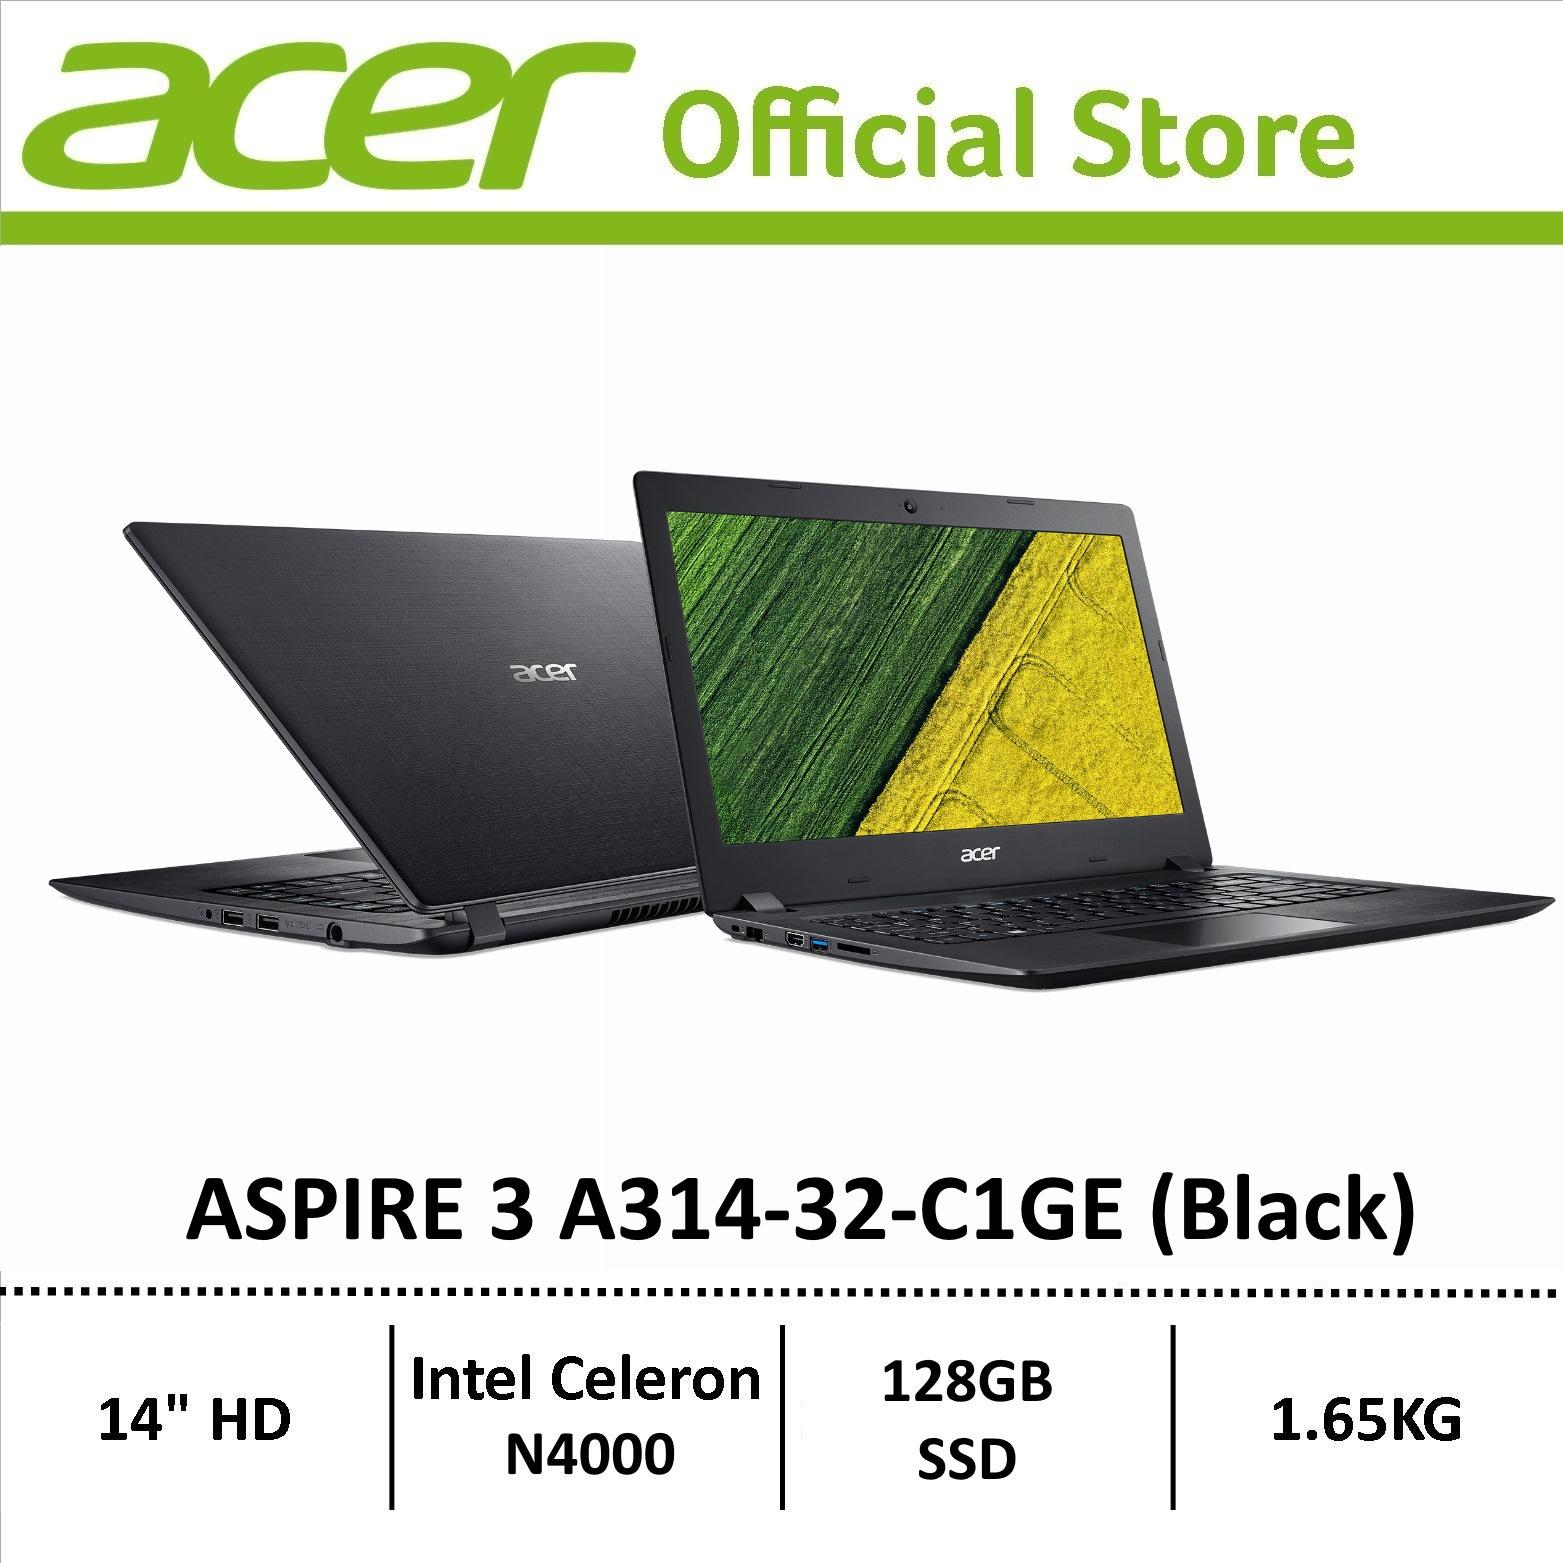 [NEW ARRIVAL] Acer Aspire 3 A314-32 14-Inch Laptop